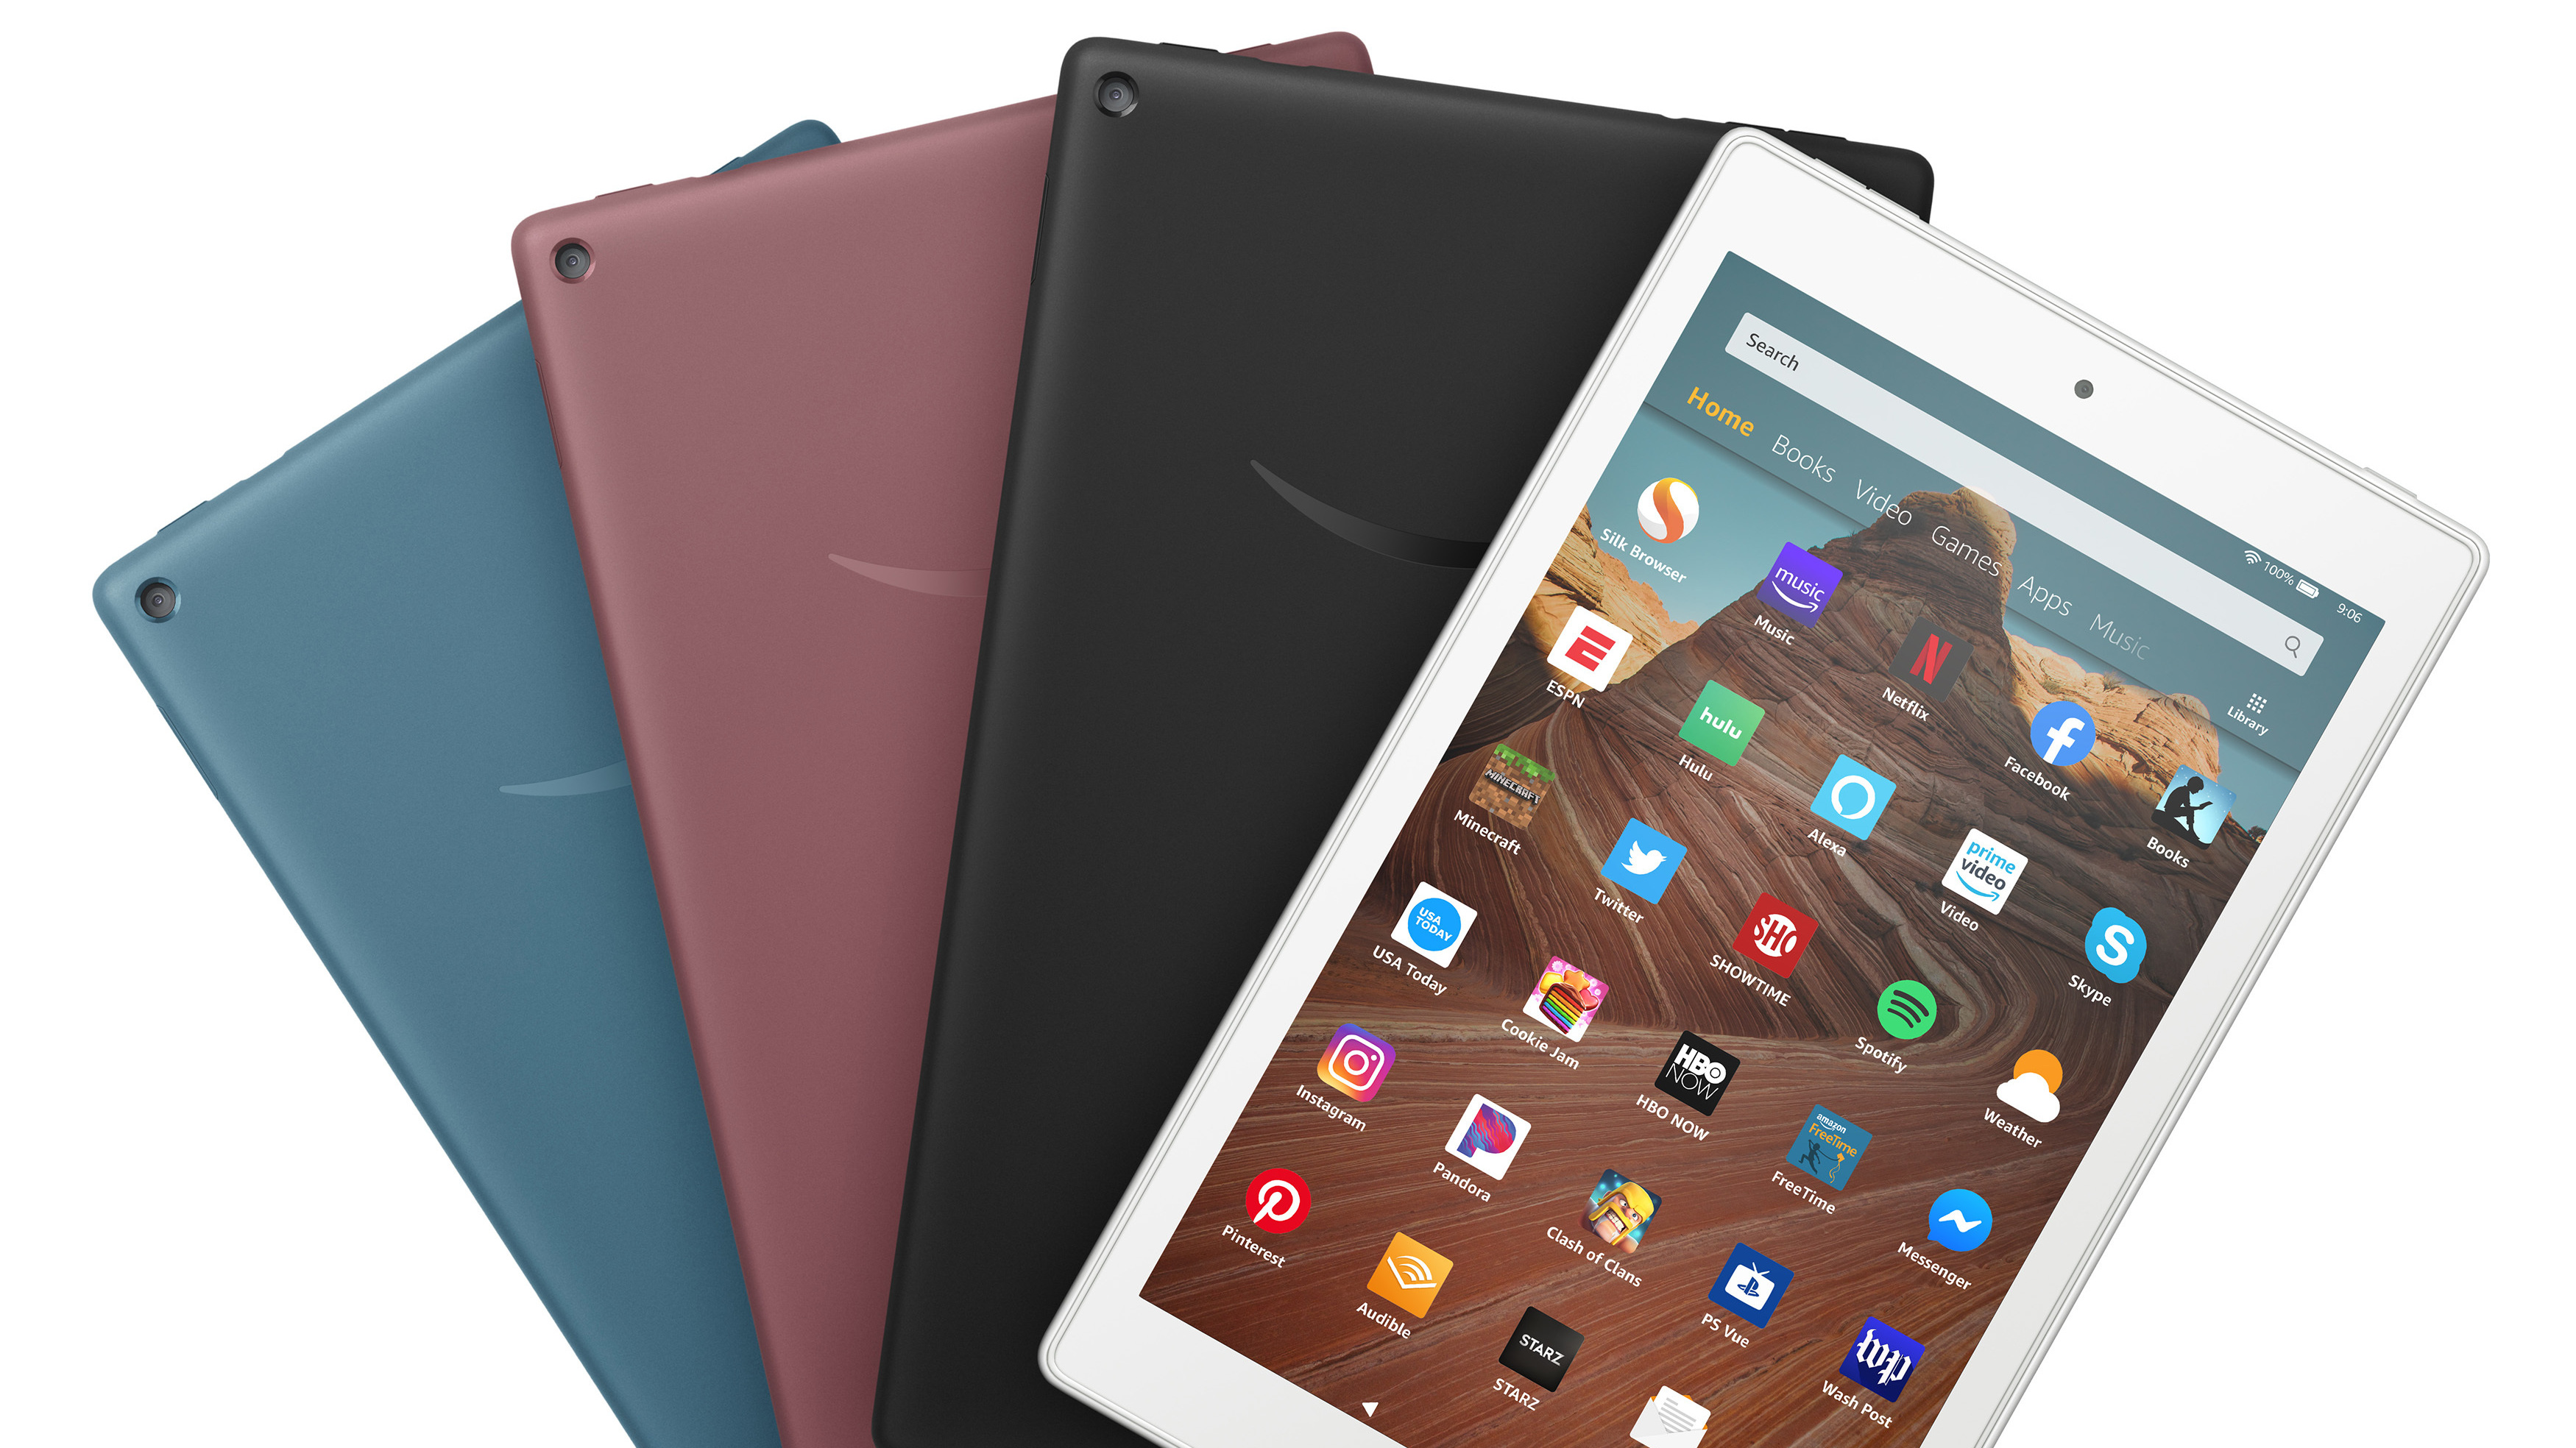 Amazon updates Fire HD 10 tablet with USB Type-C and Android Pie